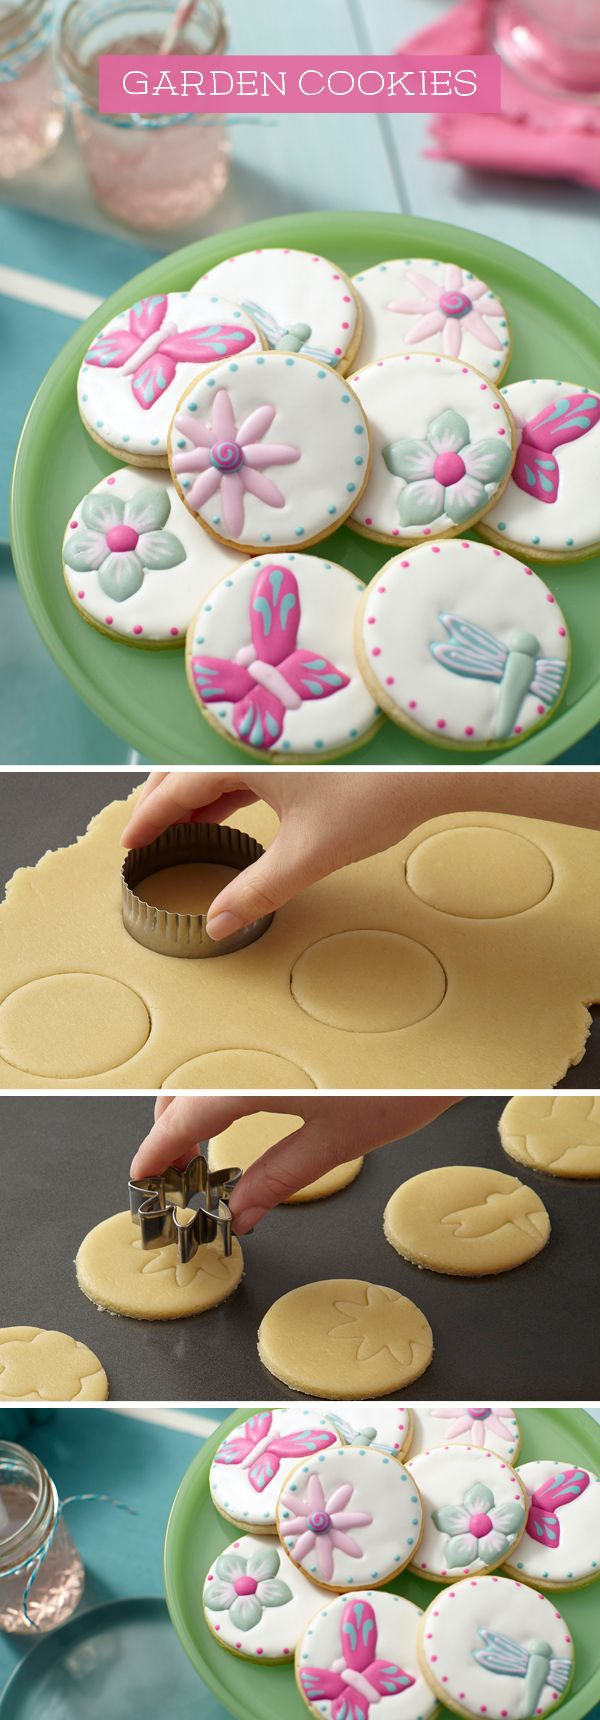 Make royal icing cookies by imprinting shapes on cookie dough to outline decorations.